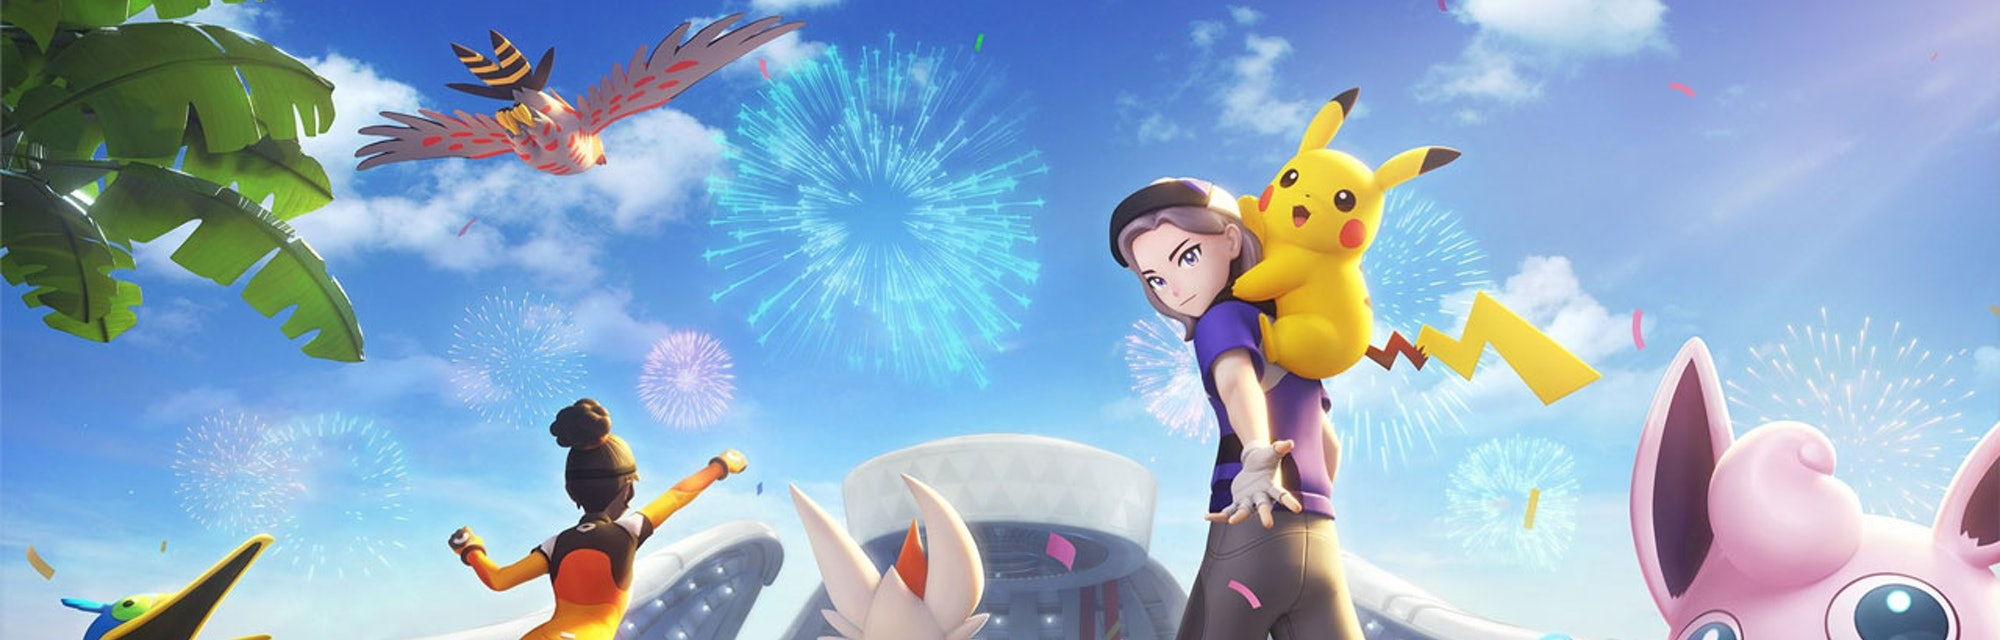 Pokémon Unite': How to add friends for multiplayer